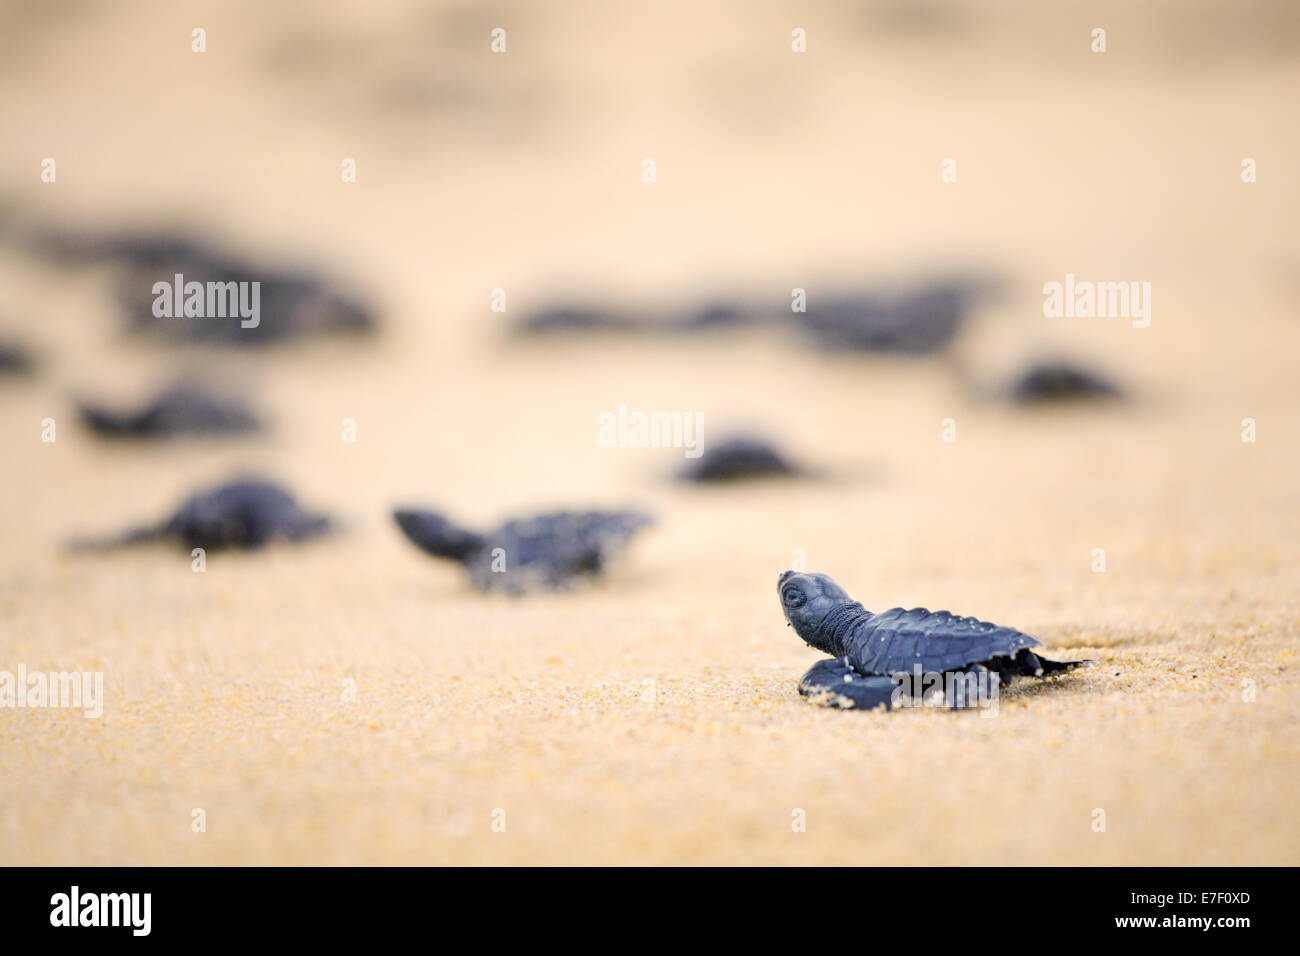 Newly hatched Olive Ridley sea turtles head out to the Pacific Ocean on the Ixtapilla, Michoacan beach in Mexico. - Stock Image